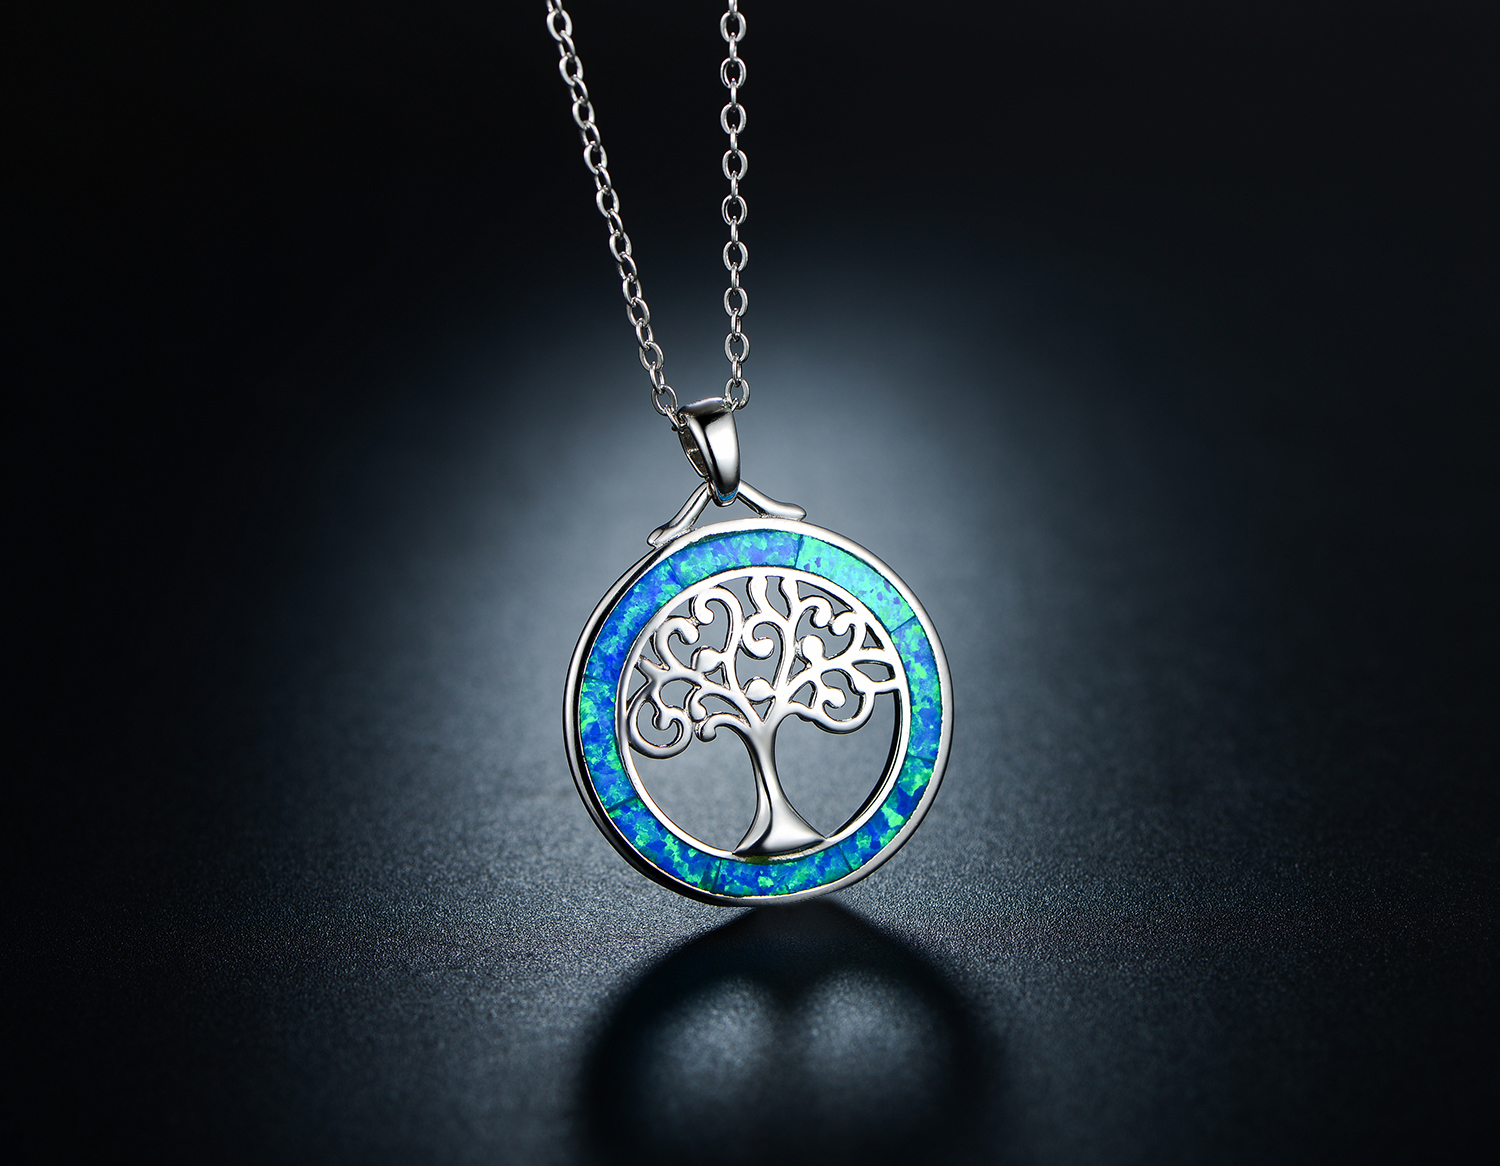 Tree-of-Life Charm Circle Pendant /& Chain Necklace in 18K White Gold Plate